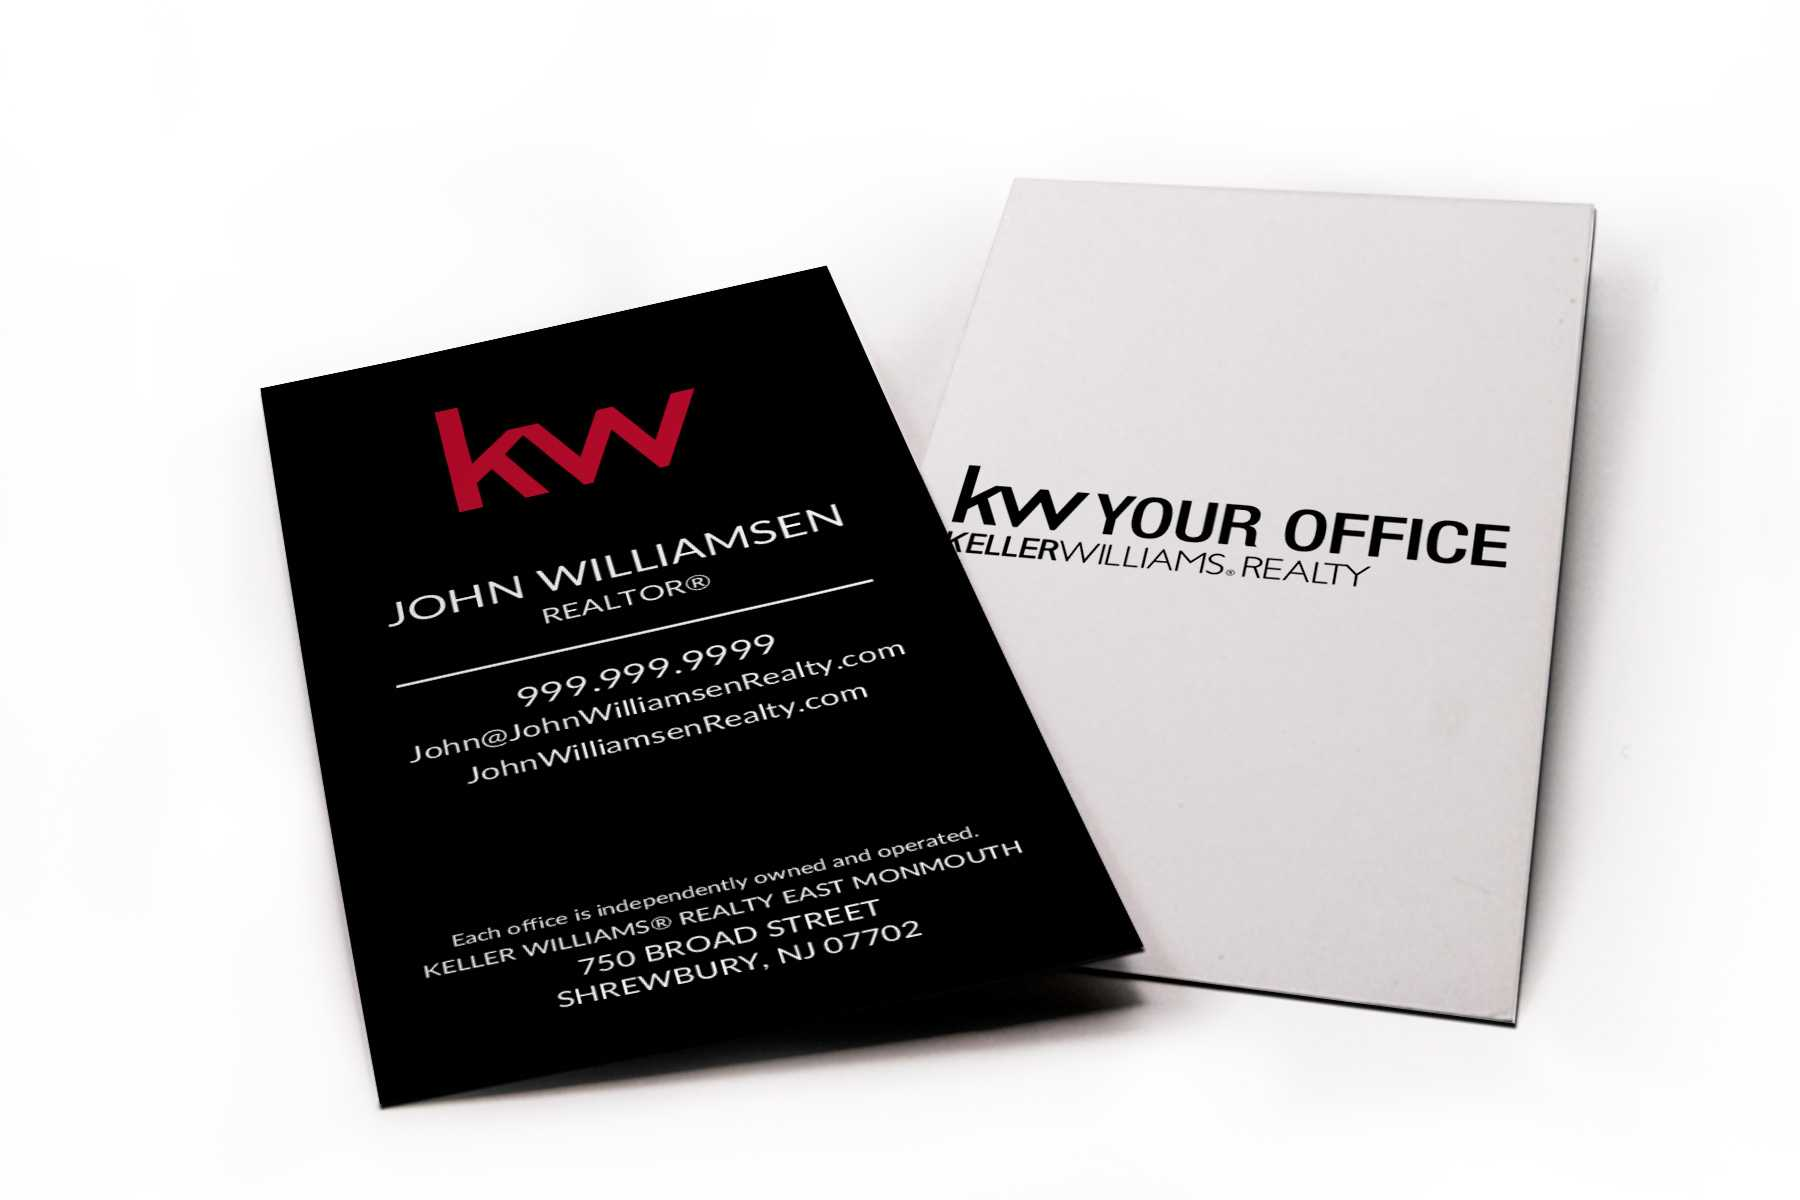 Vertical Black Kw Business Card With Keller Williams Business Card Templates